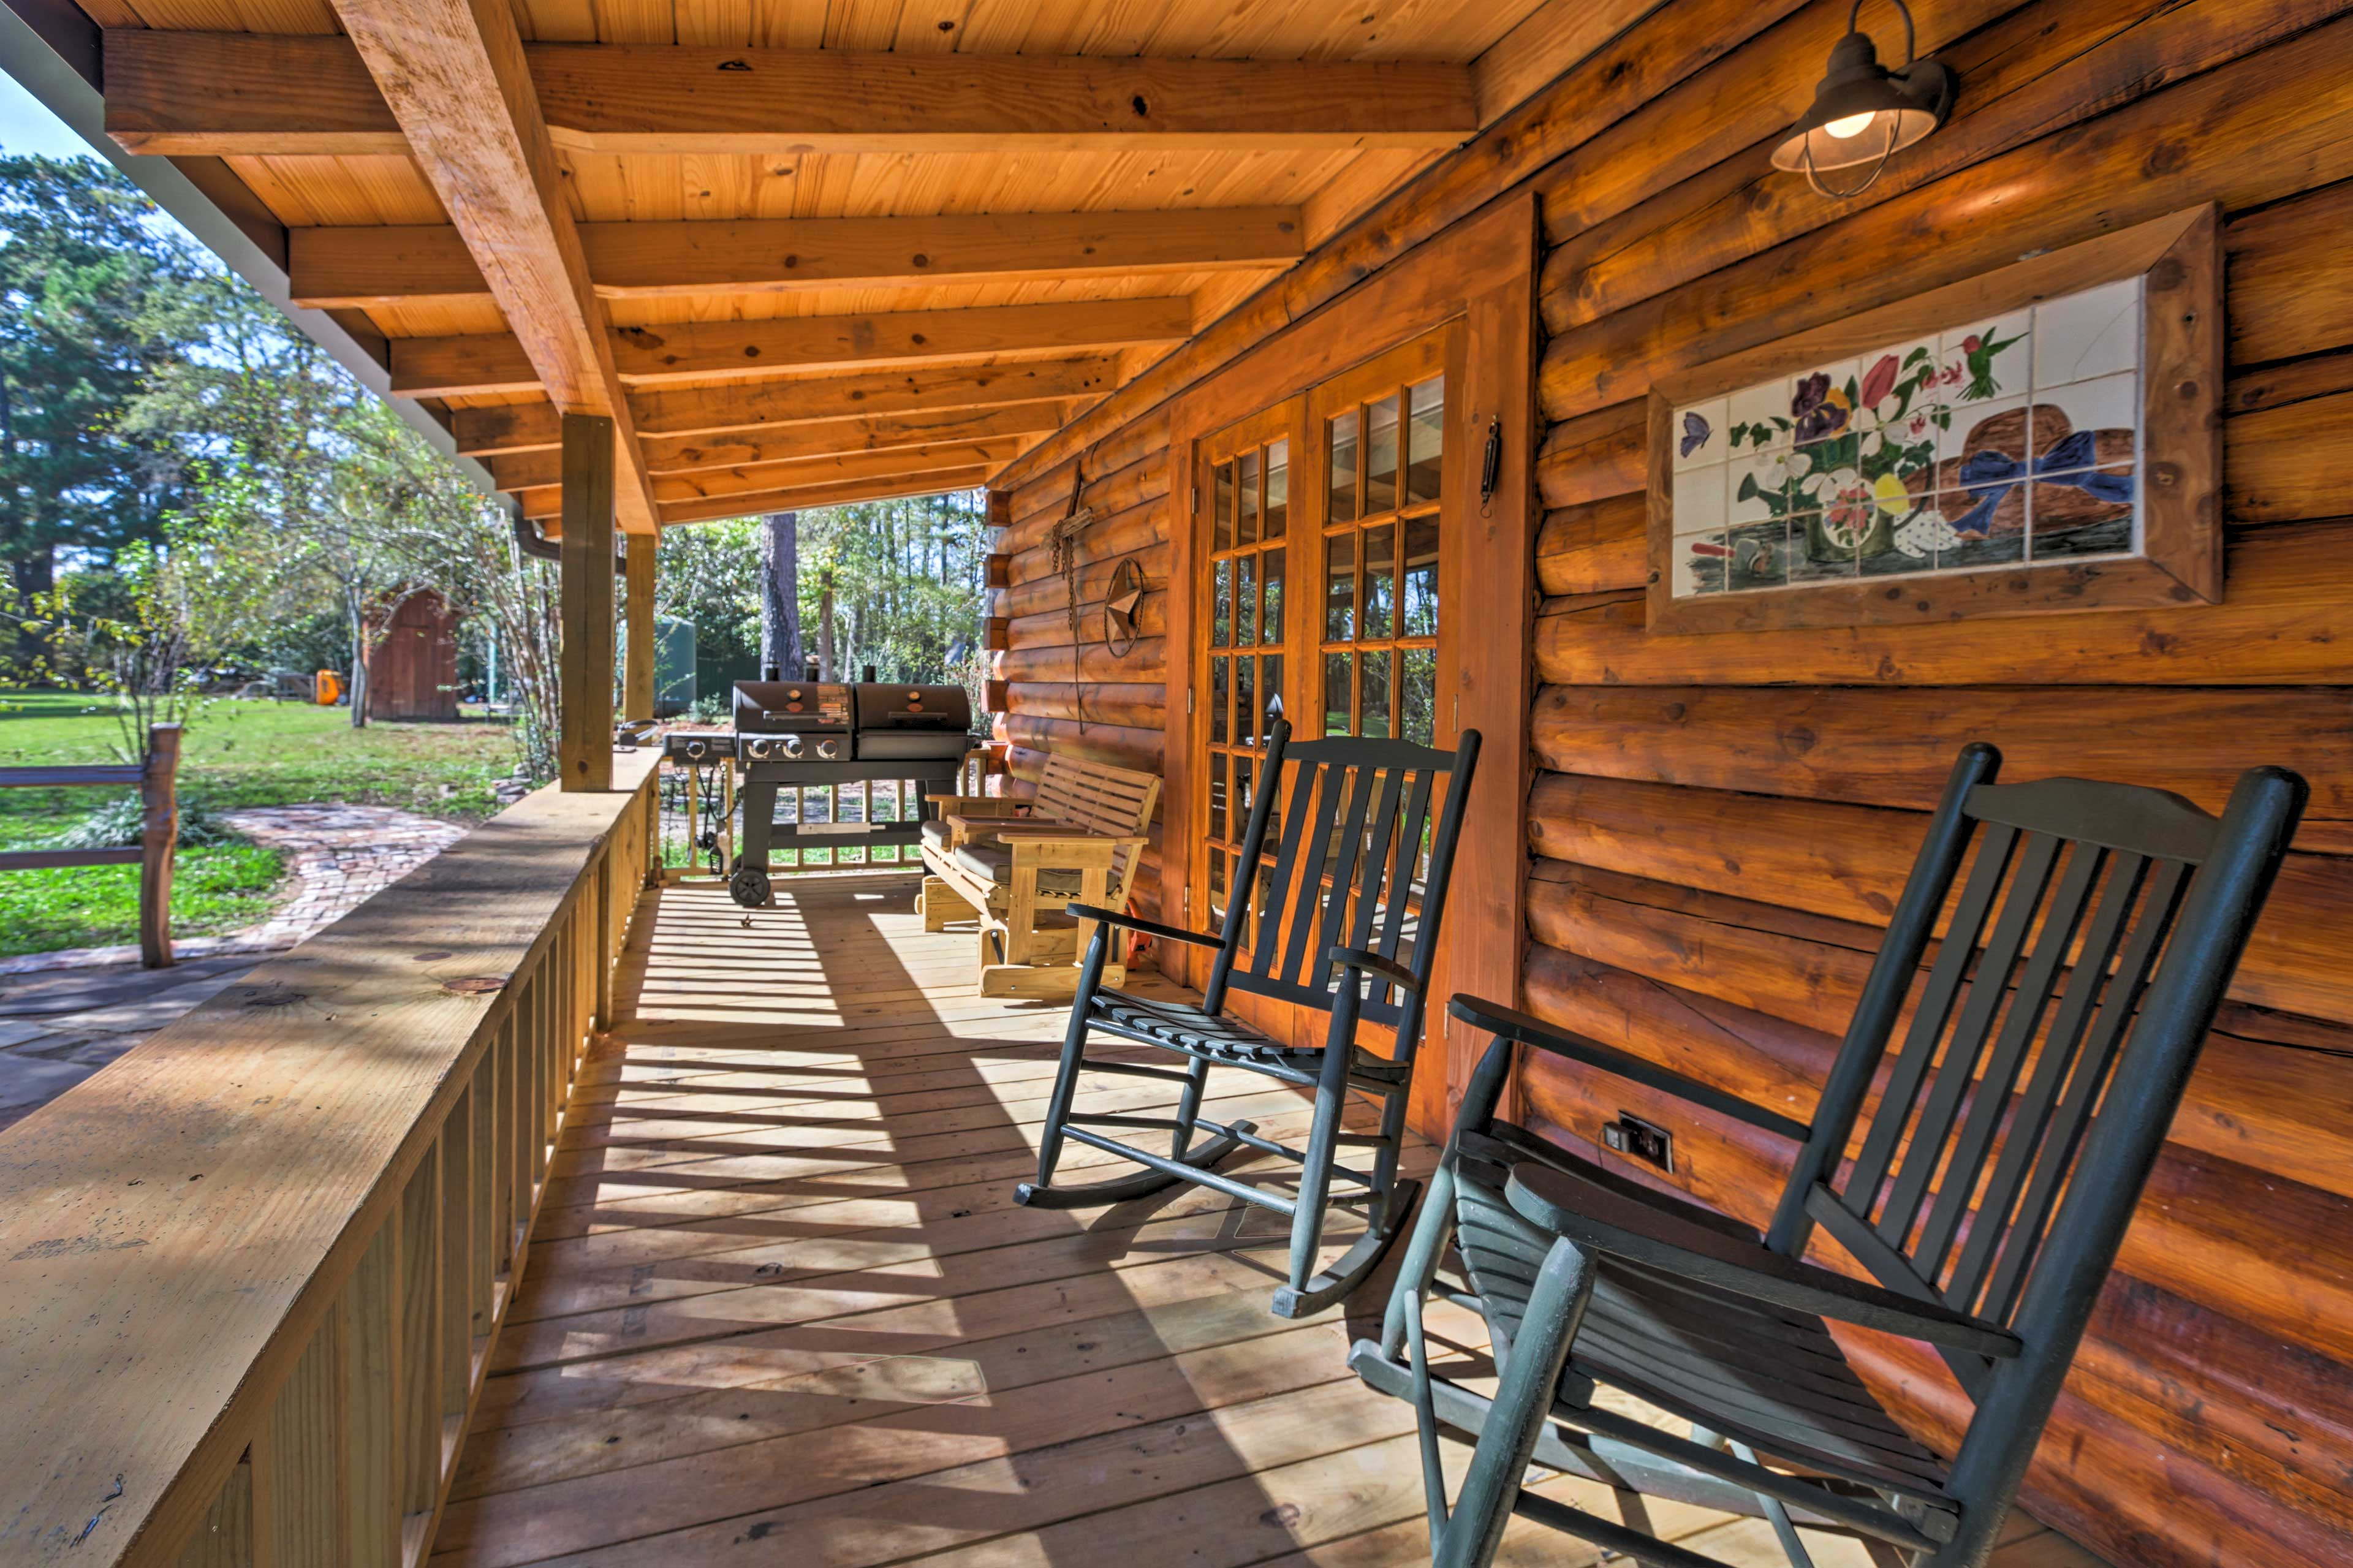 Relax in a rocking chair on the spacious back porch with views of the pond!